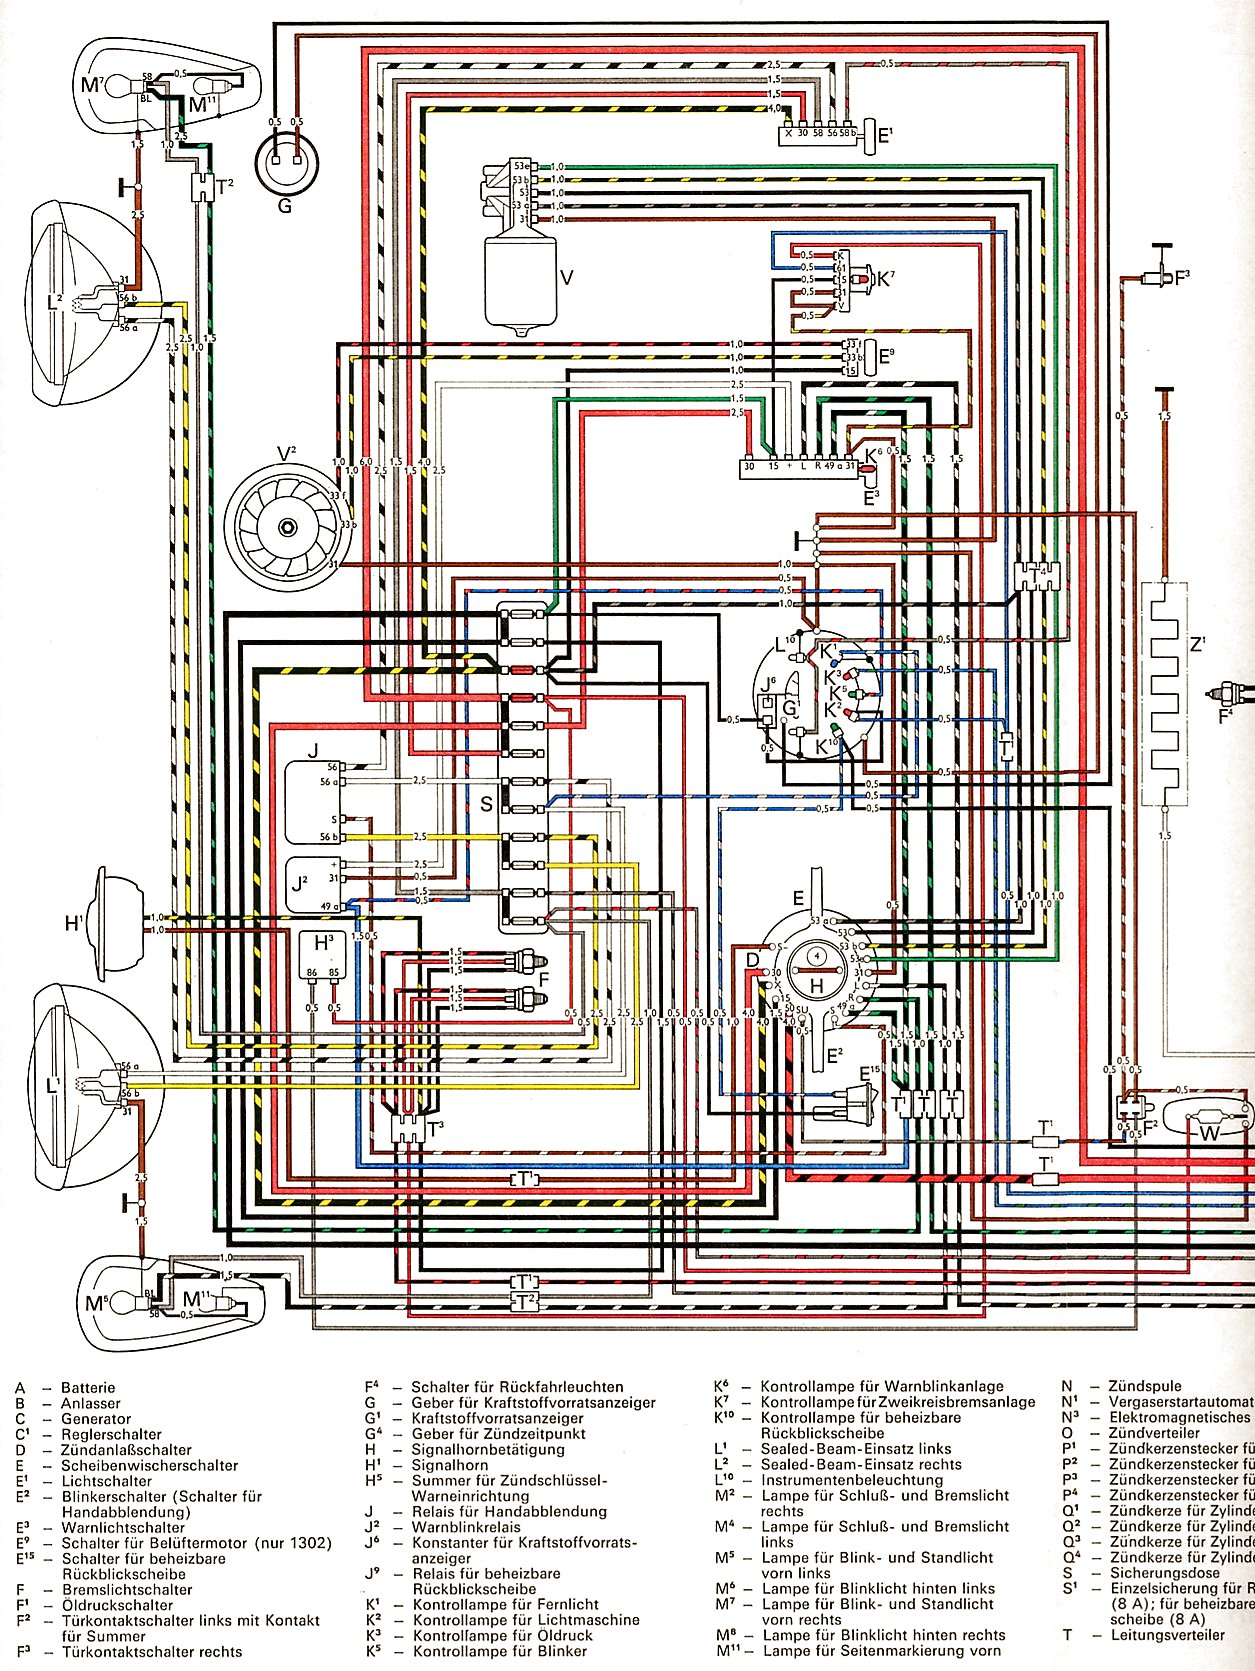 1300_and_1302_USA_from_August_1971 1 wiring diagram shoptalkforums com vw wiring diagrams at webbmarketing.co